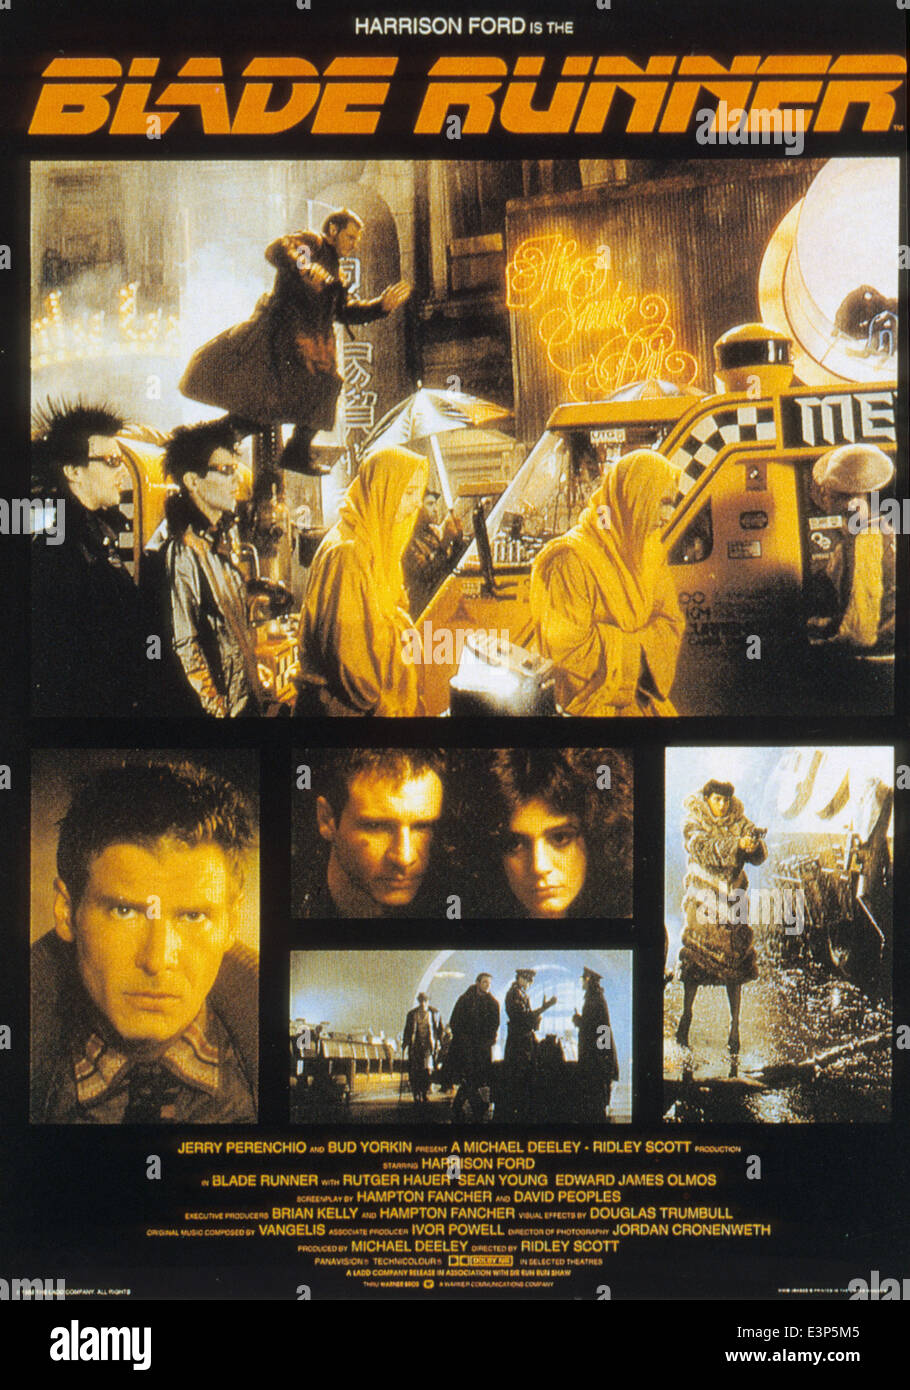 BLADE RUNNER Poster for the 1982 Ladd Company/Warner Bros film with Harrison Ford and Sean Young - Stock Image